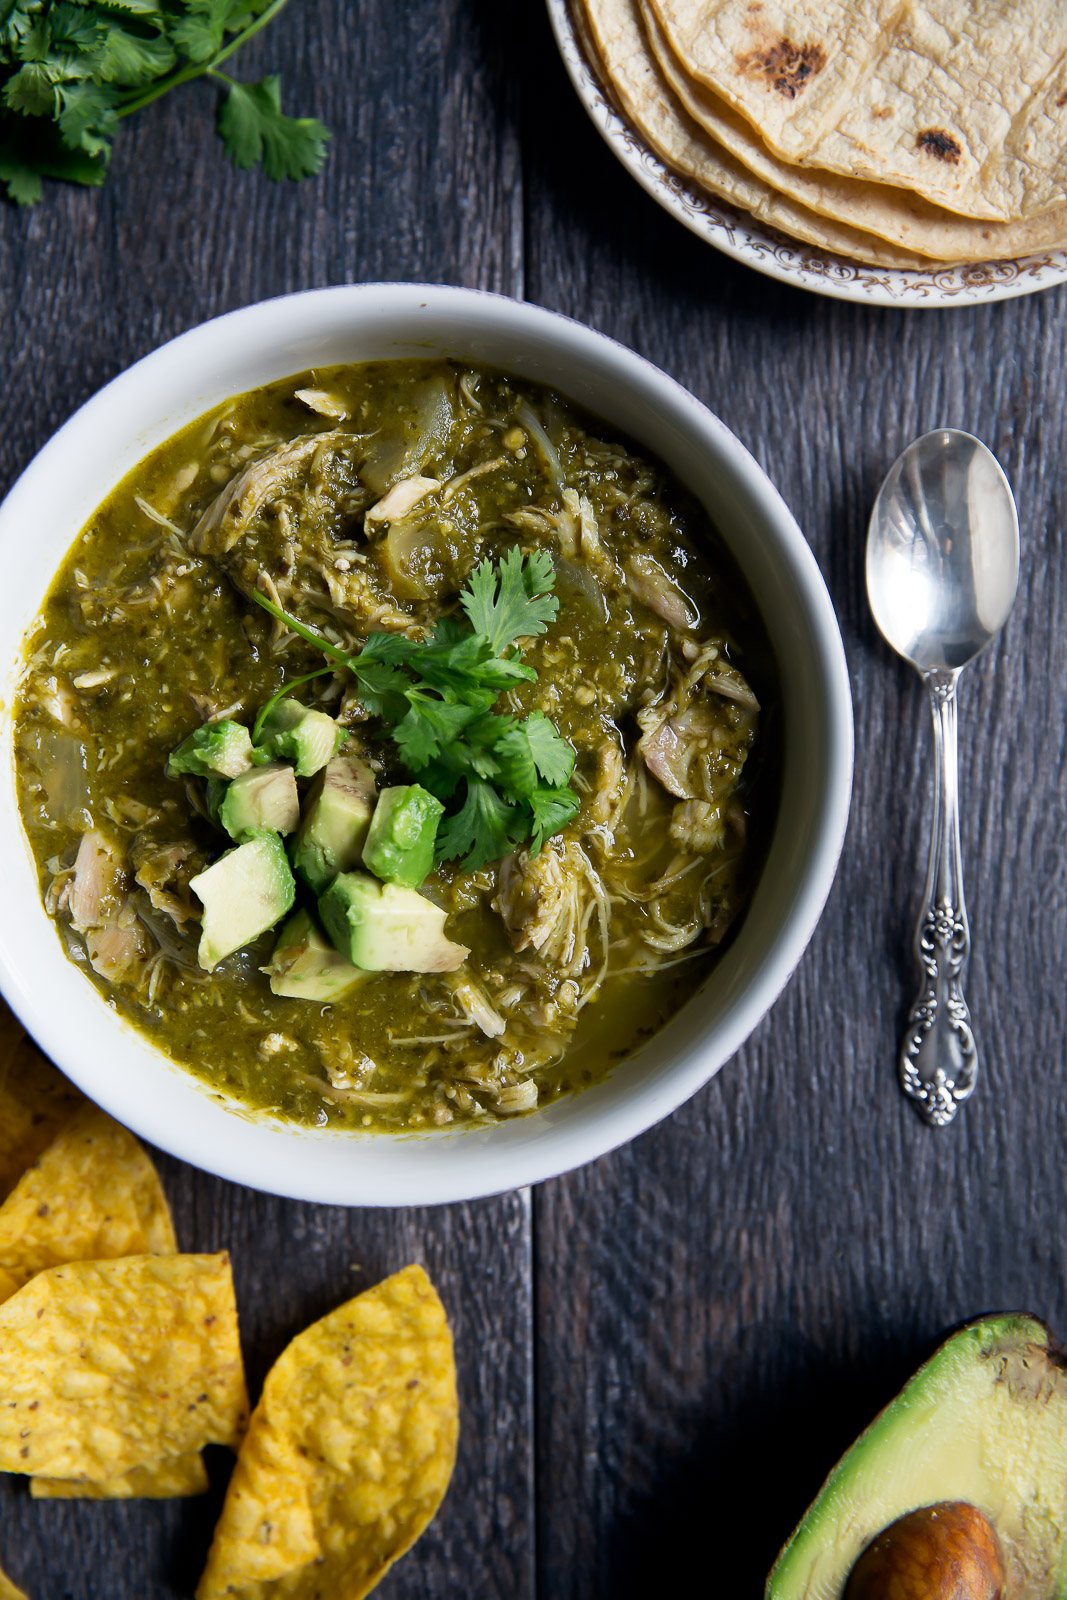 healthy slow cooker recipes: slow cooker chicken chile verde in a bowl